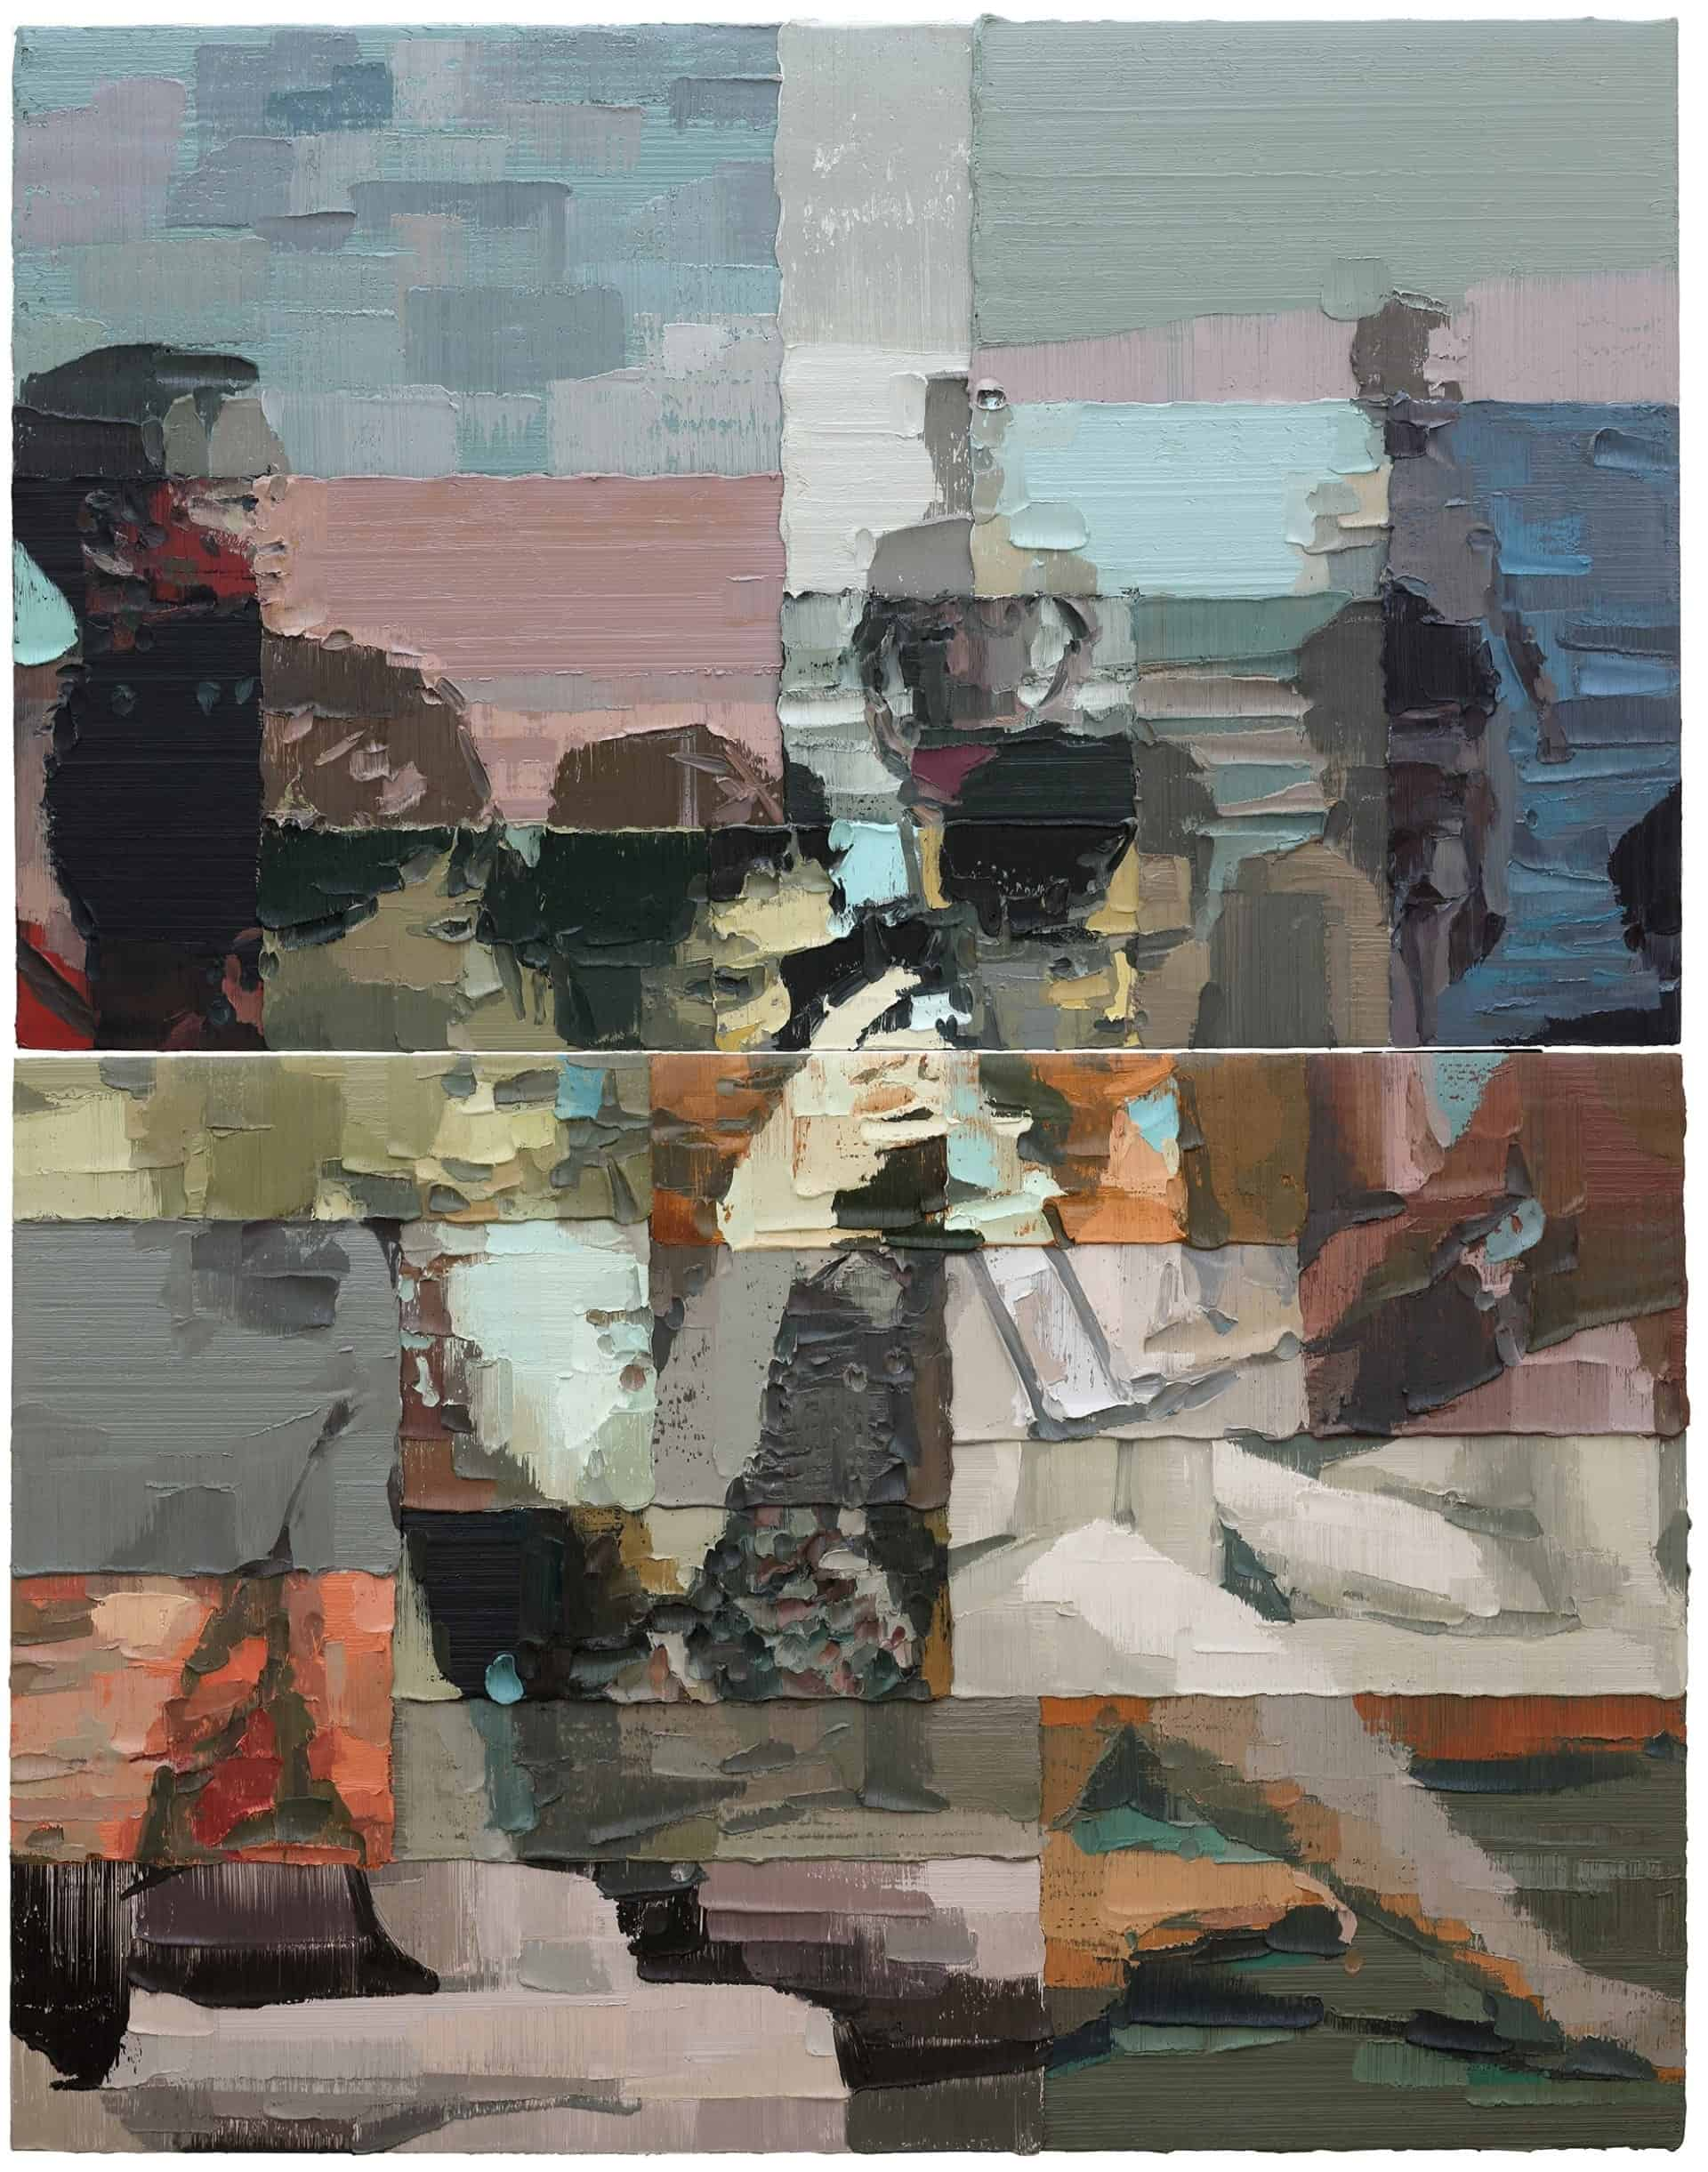 South (2017) © Li Songsong, courtesy Pace Gallery